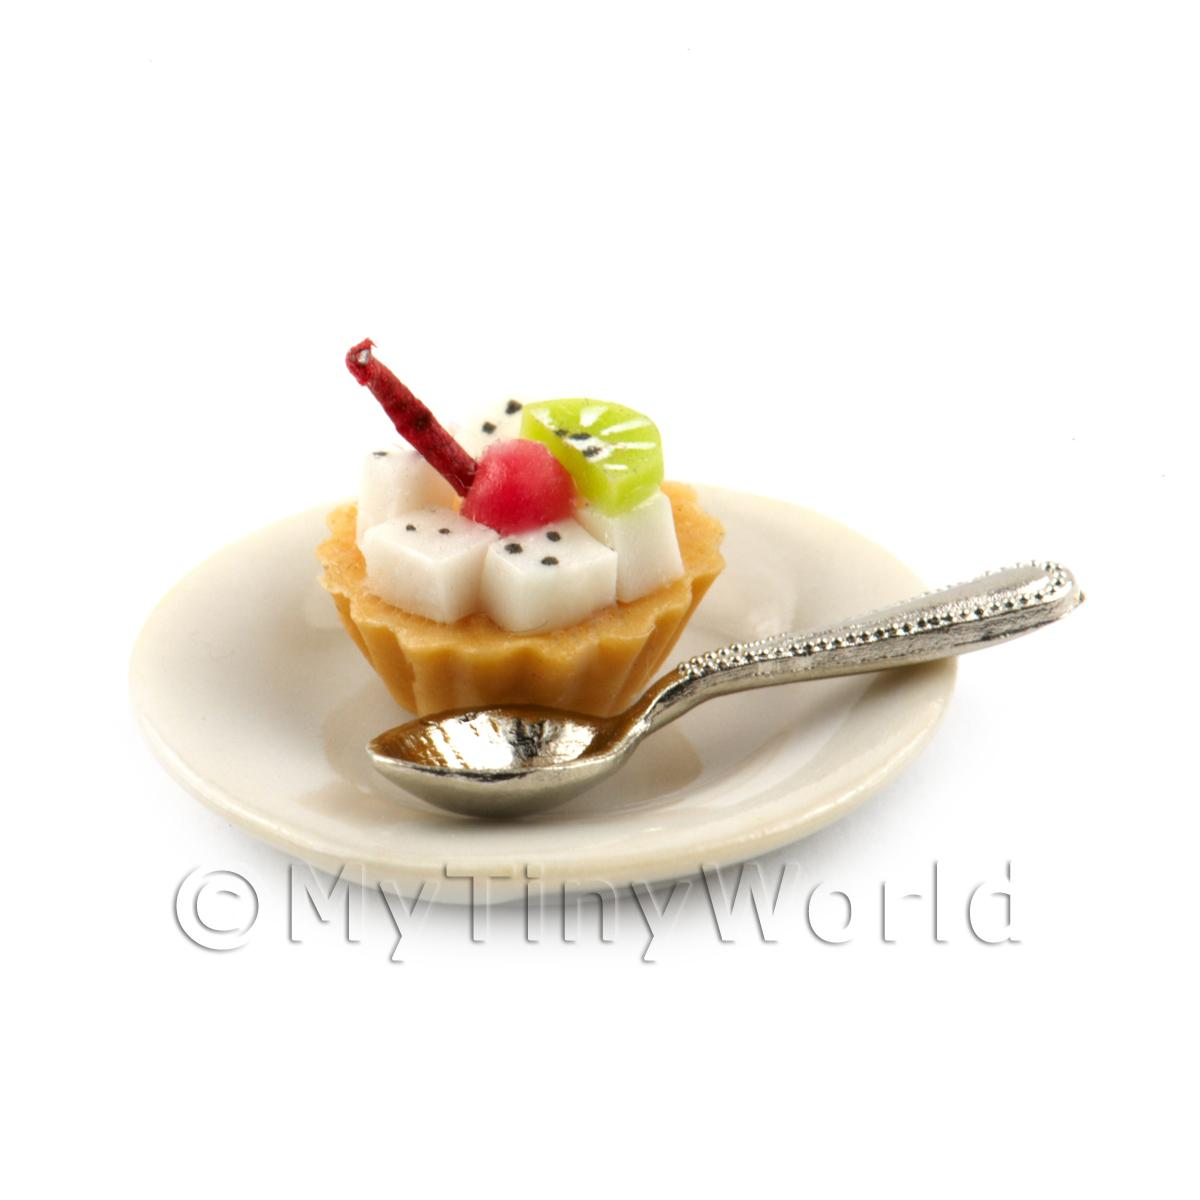 Dolls House Miniature Very Berry Tart on a plate with a spoon